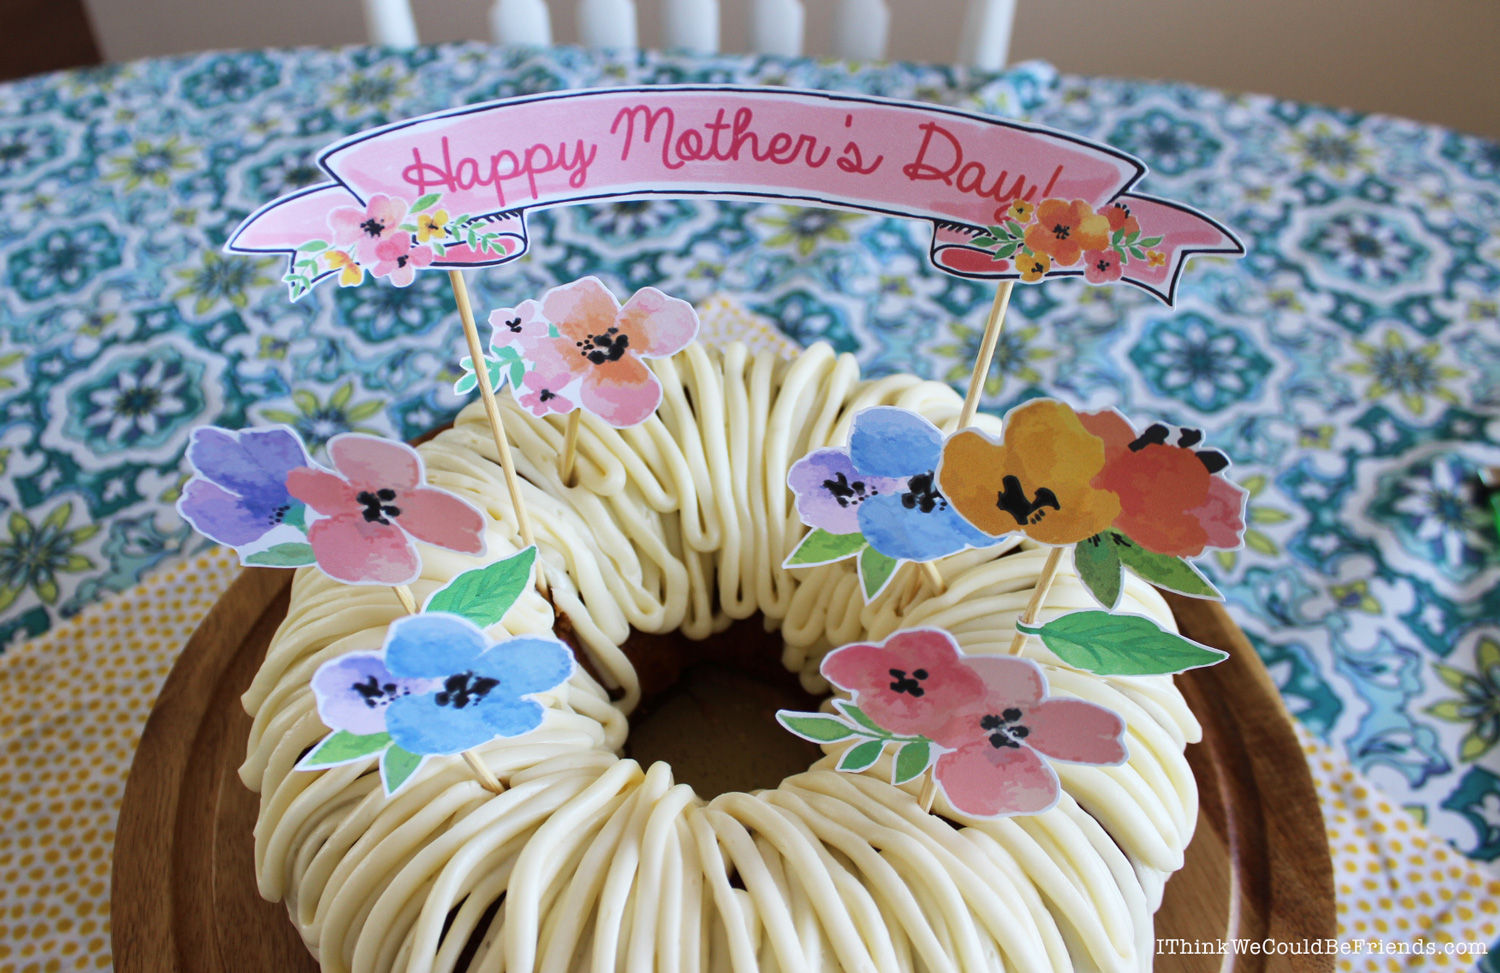 Looking for Mother's Day Cake ideas? This is a FUN, EASY and CHEAP cake topper that makes a BIG impact! Just print, cut-out the flowers and banner, glue or tape onto skewers and stick into your cake! You can use a homemade cake, store bought or even use cupcakes! #mothers #day #cake #ideas #free #printable #topper #decoration #floral #flowers #easy